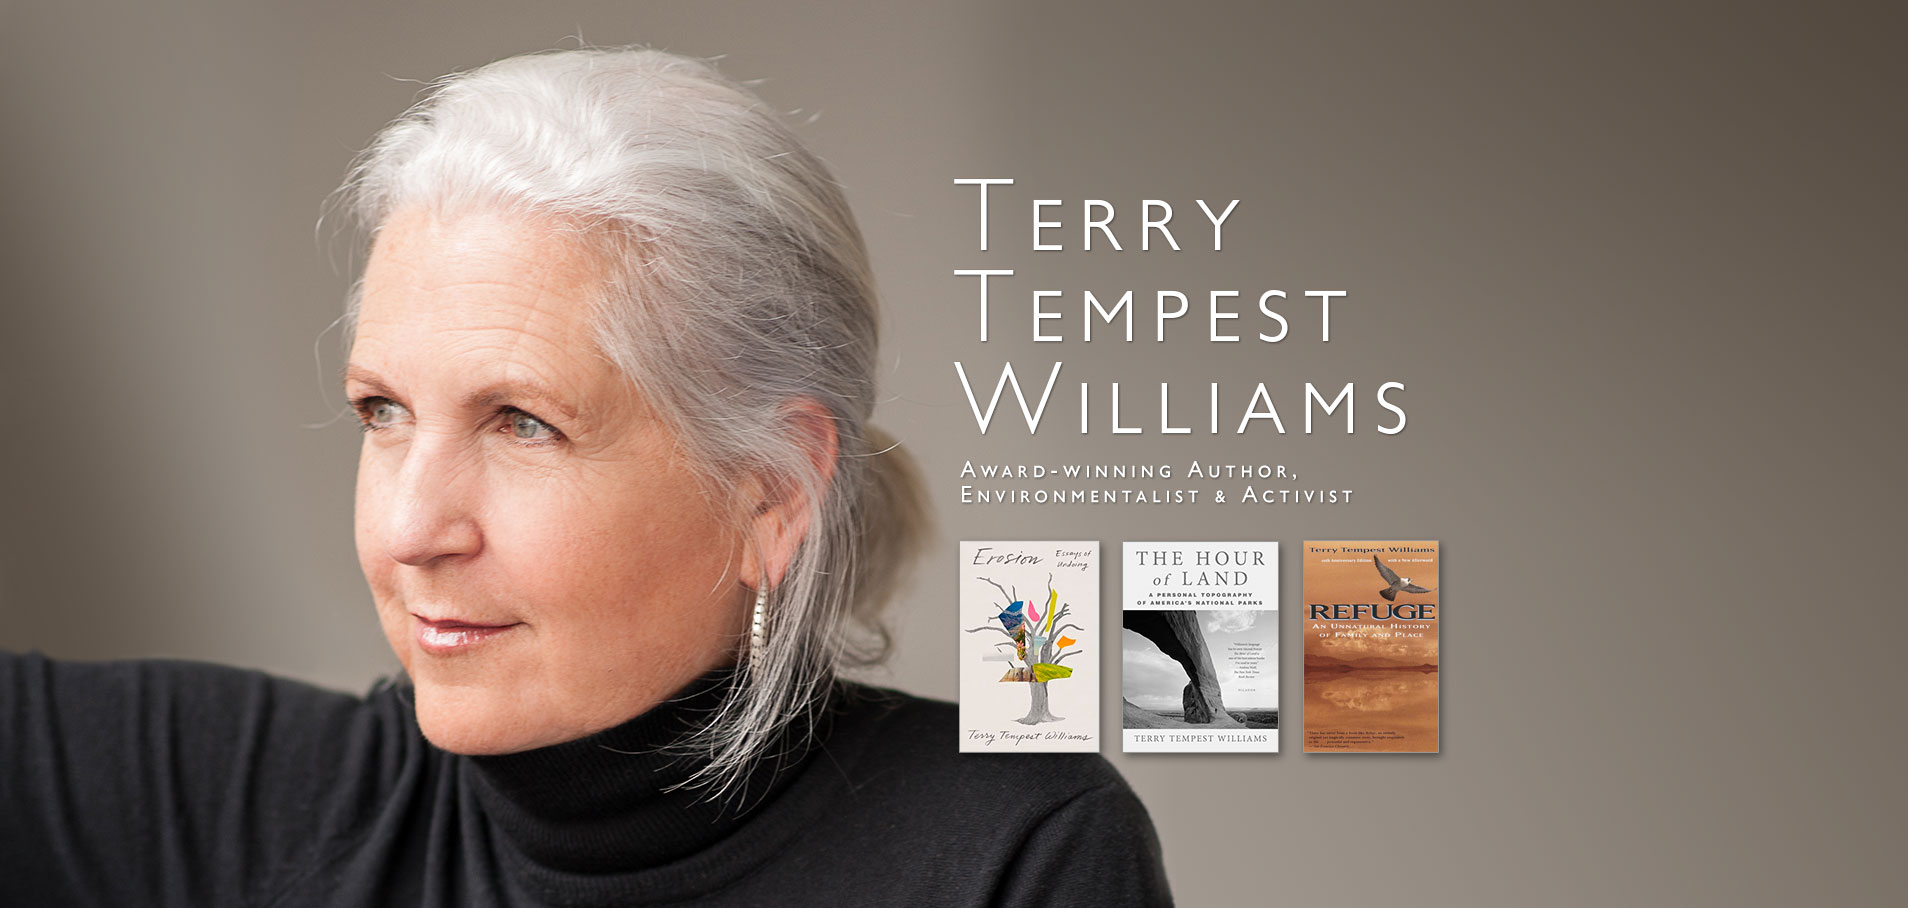 Terry Tempest Williams image